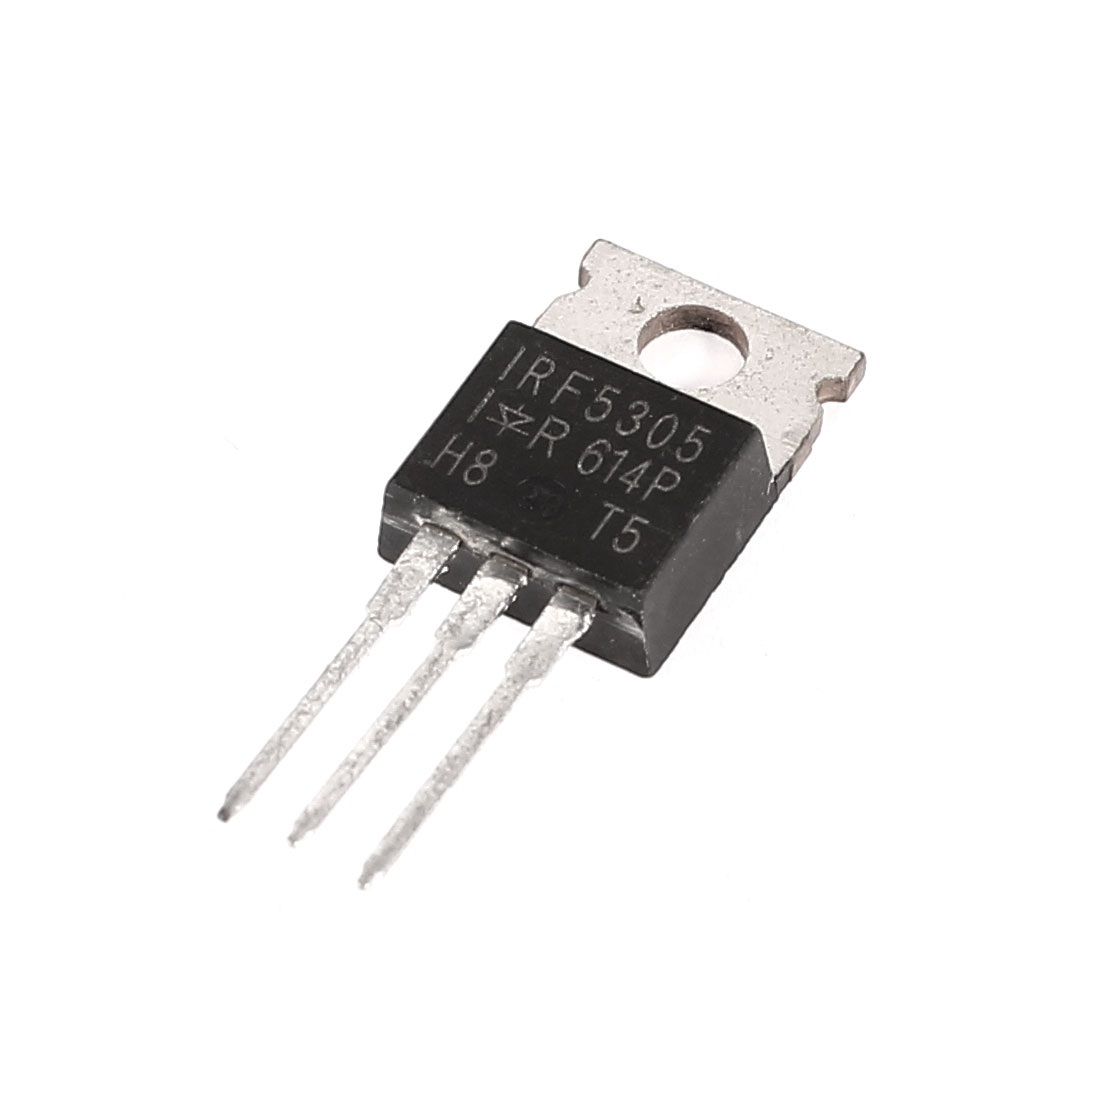 IRF5305 High Voltage Semiconductor 3 Pin PNP Power Transistor TO-220AB